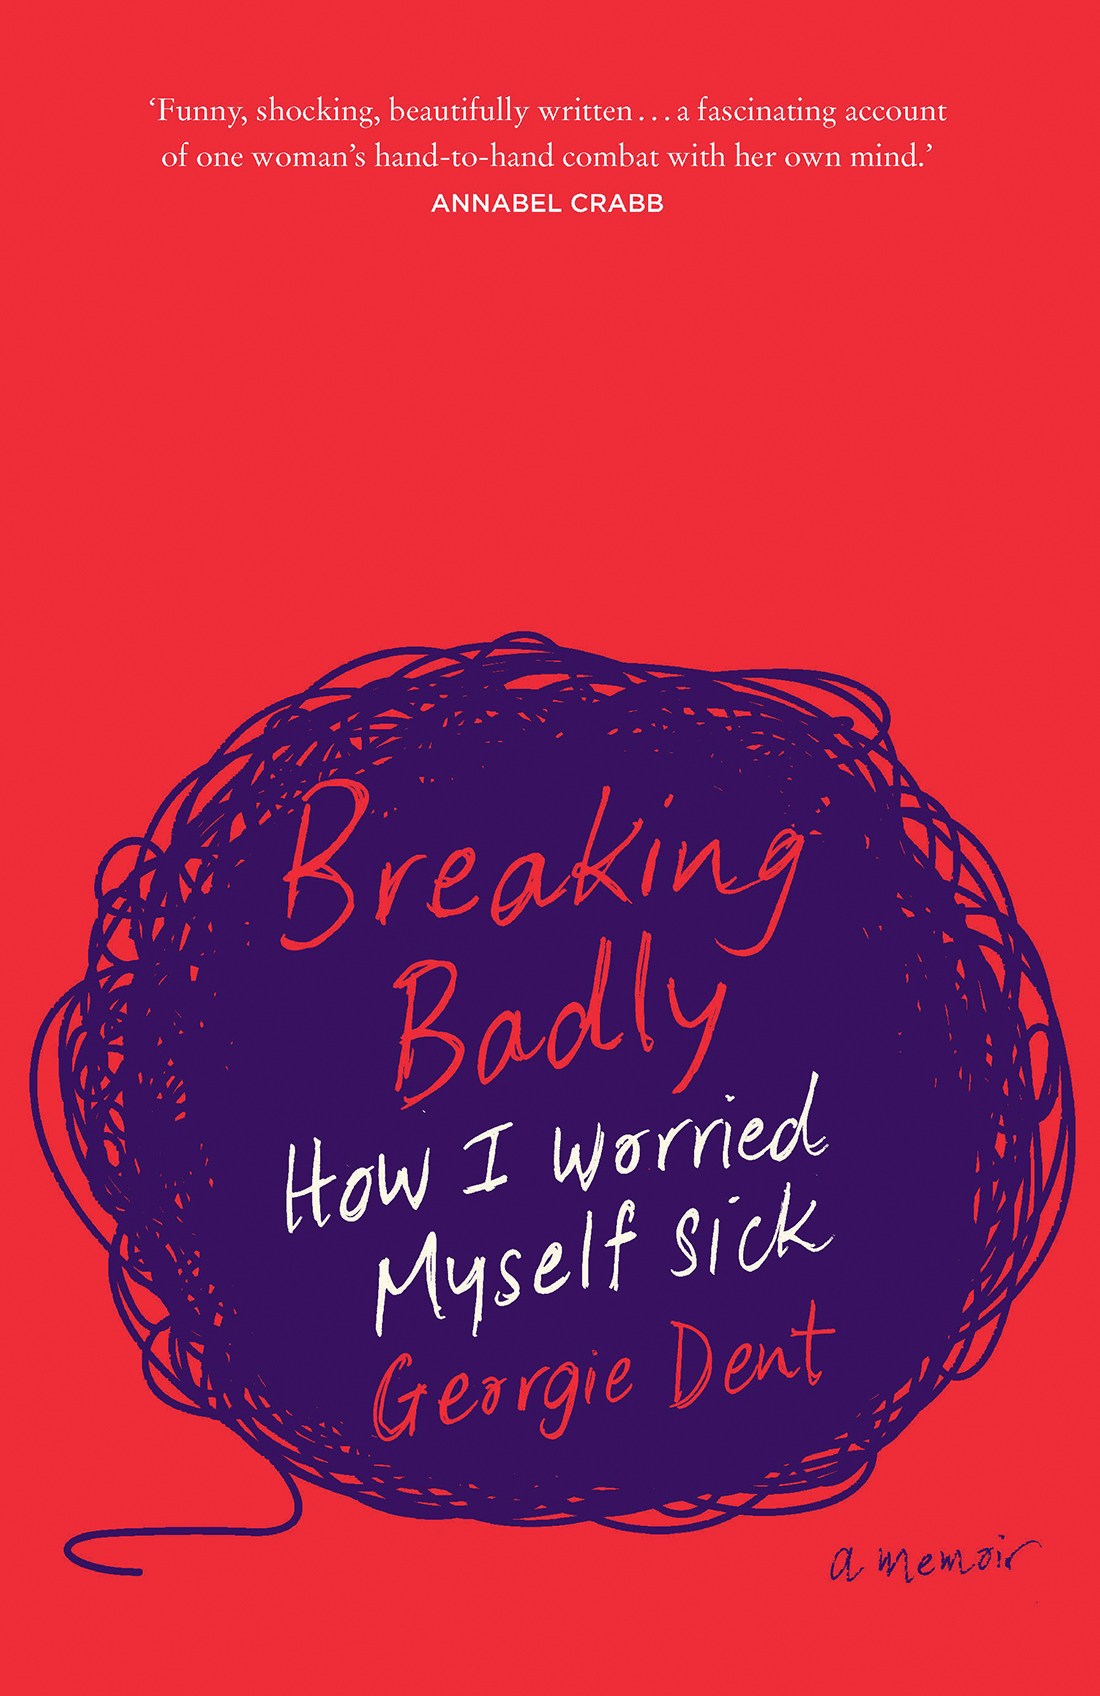 Cover image of 'Breaking Badly' by Georgie Dent